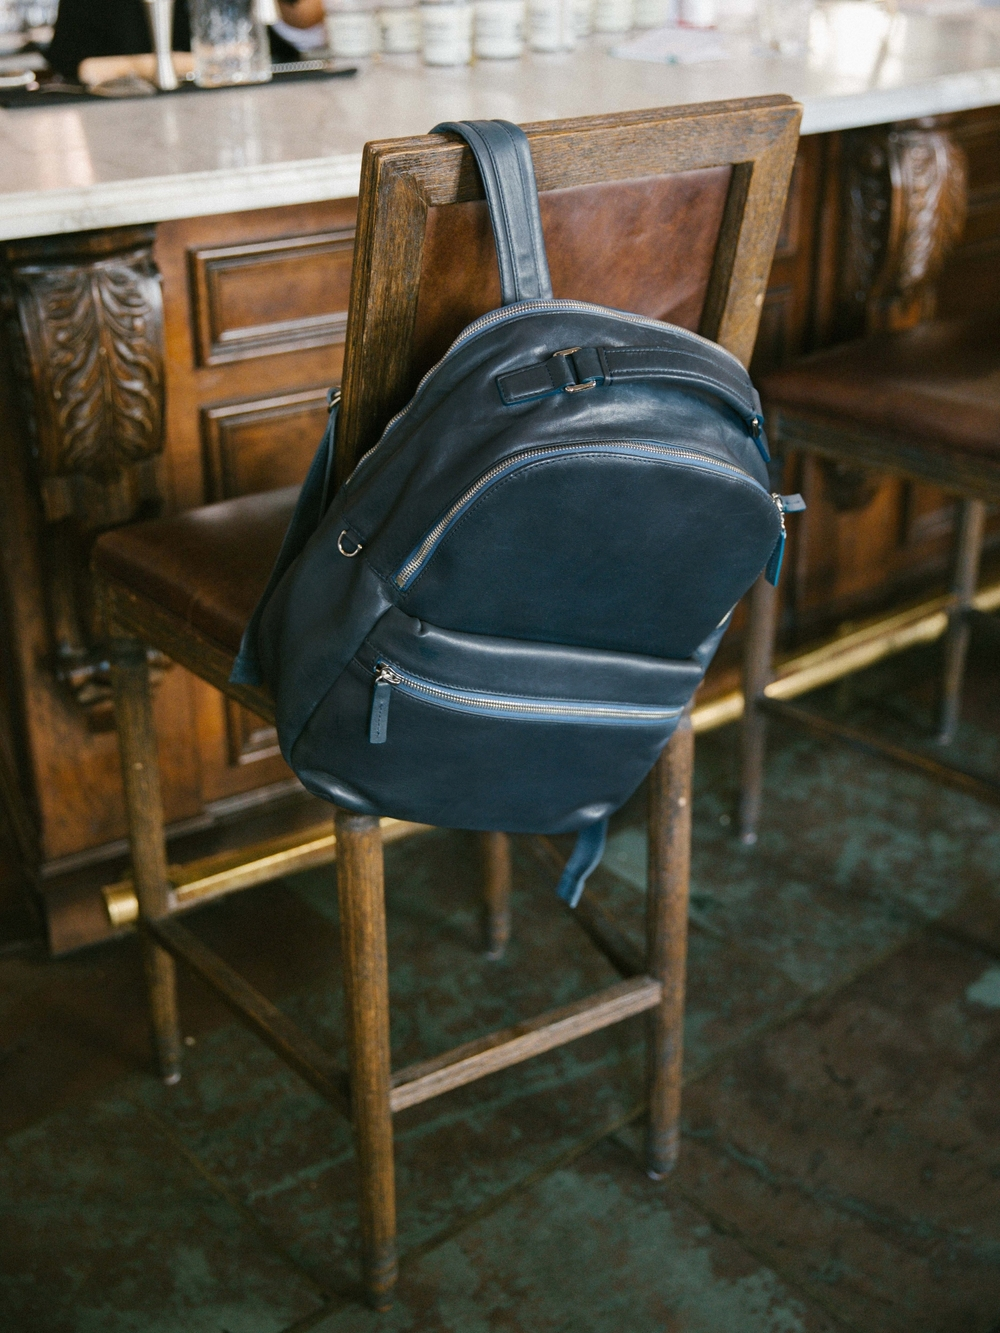 SHINOLA FALL 2015 LEATHER COLLECTION